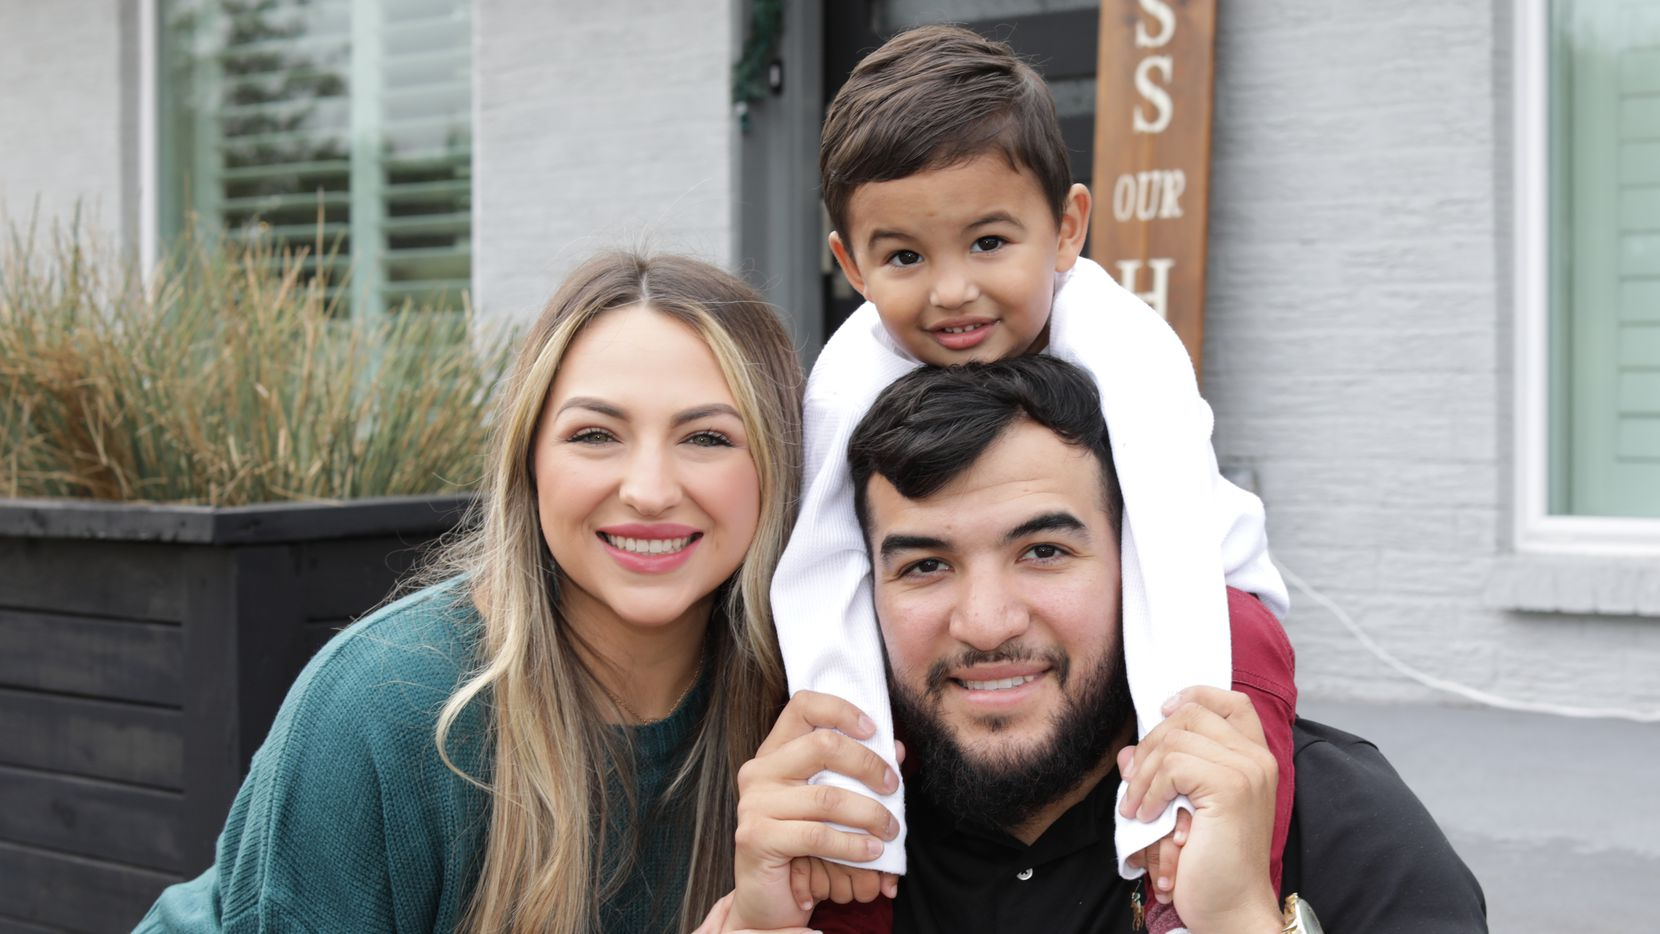 Texas Rangers catcher Jose Trevino, pictured with Markie Mandel and their son, Josiah Trevino, has expanded his family's annual toy drive to Frisco.